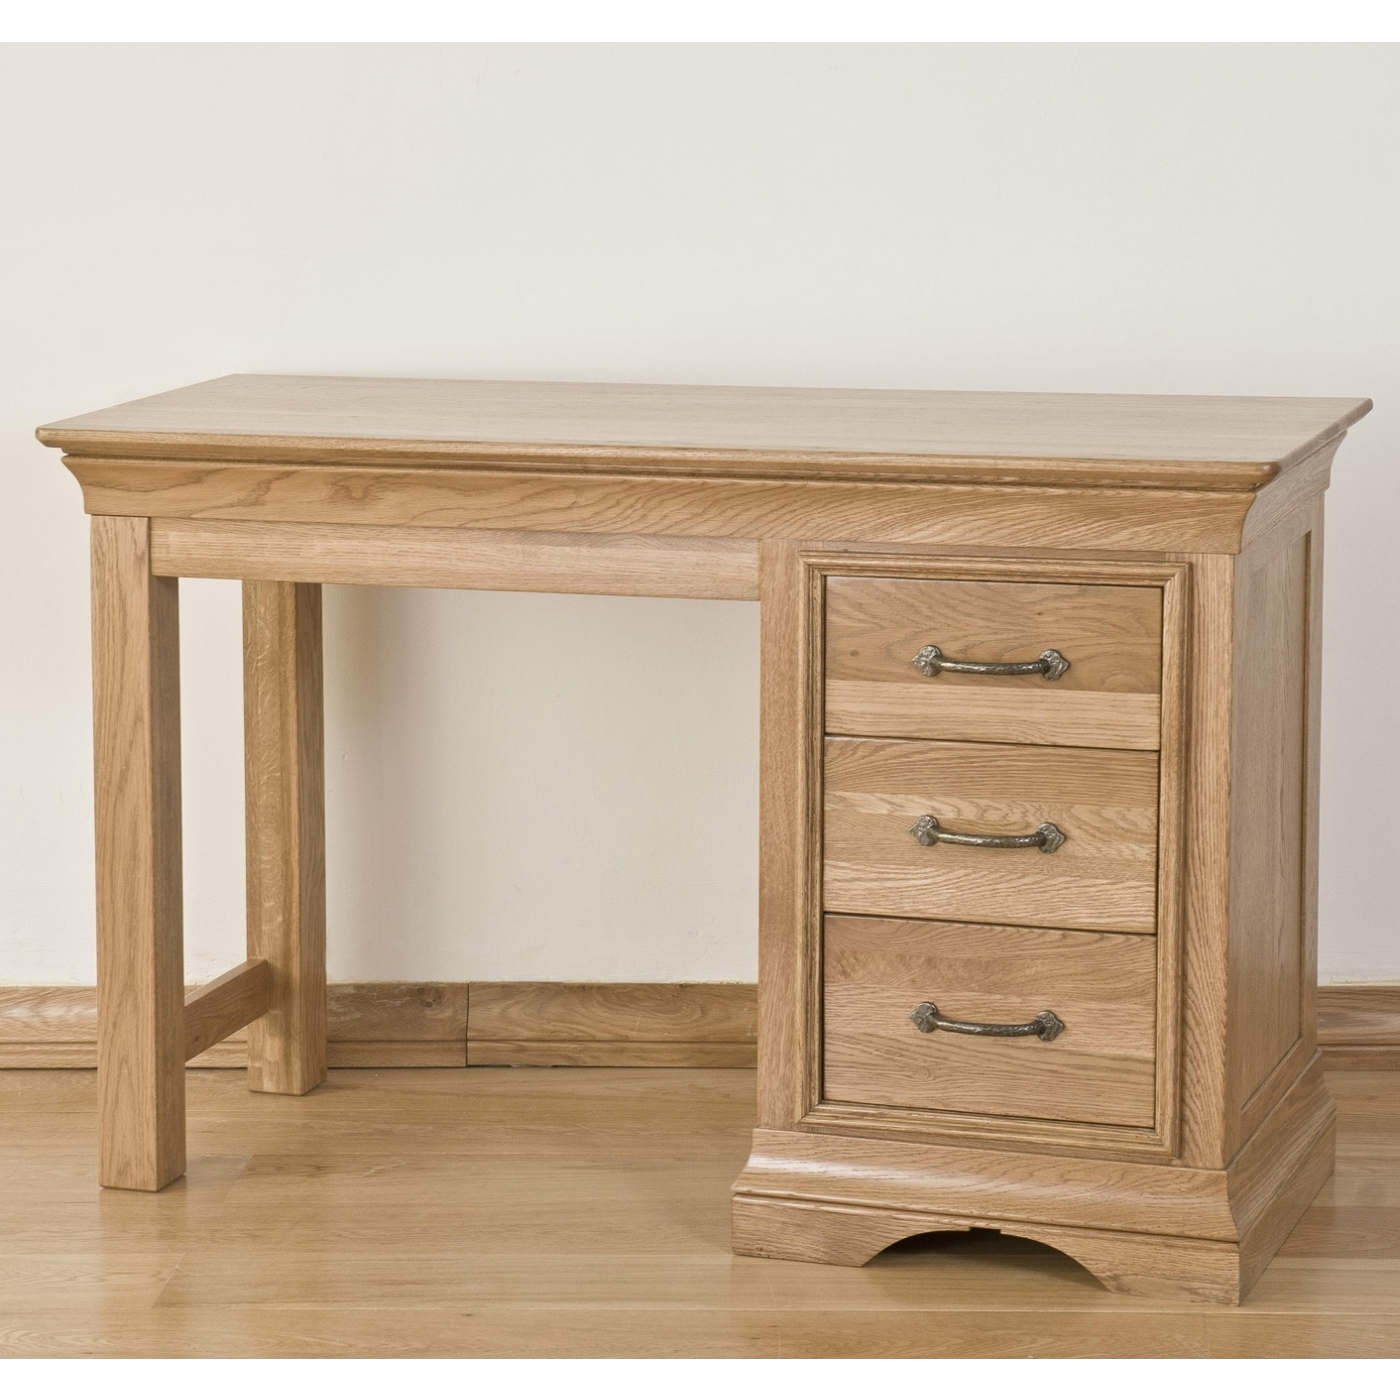 Toulon solid oak furniture single pedestal bedroom for Single dressing table